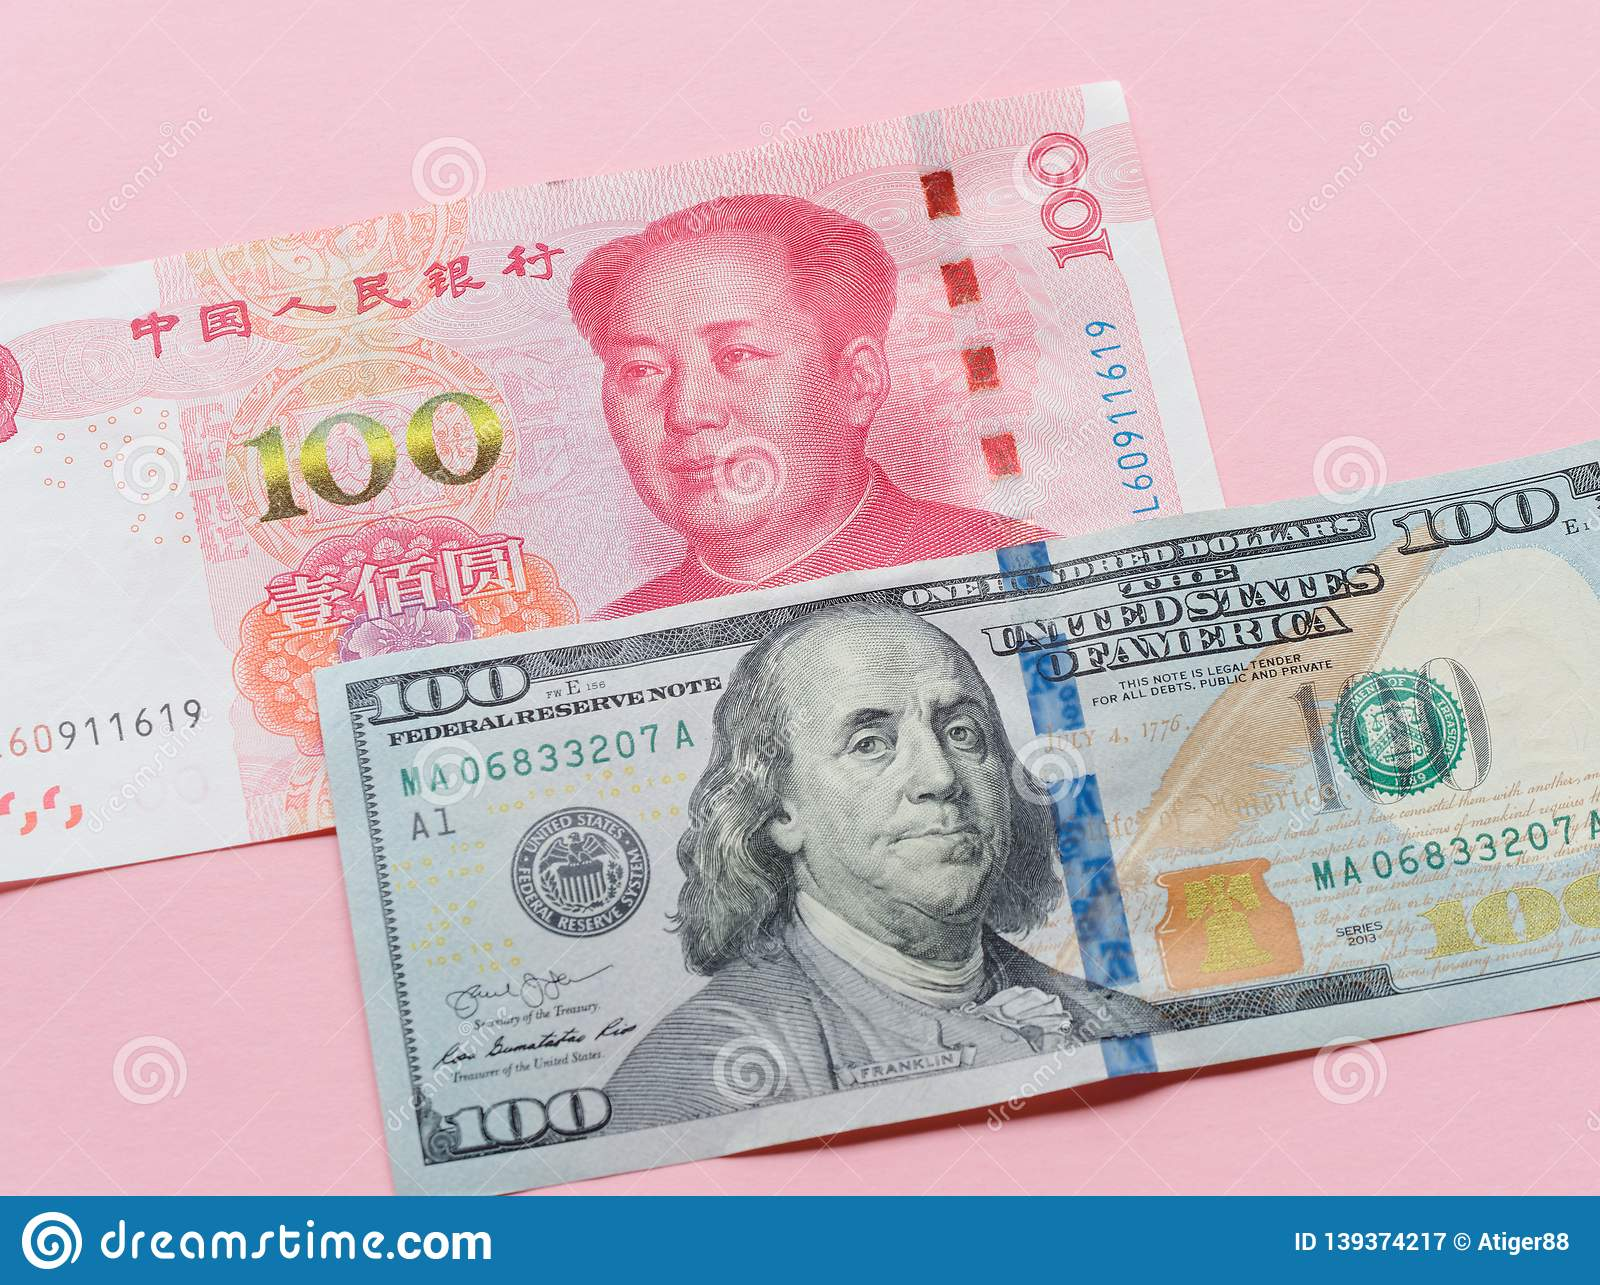 Us Dollar Bill And China Yuan Banknote Macro Chinese And Usa Economy Finance Trade Business Money Closeup Forex Concept Stock Image Image Of Look Income 139374217